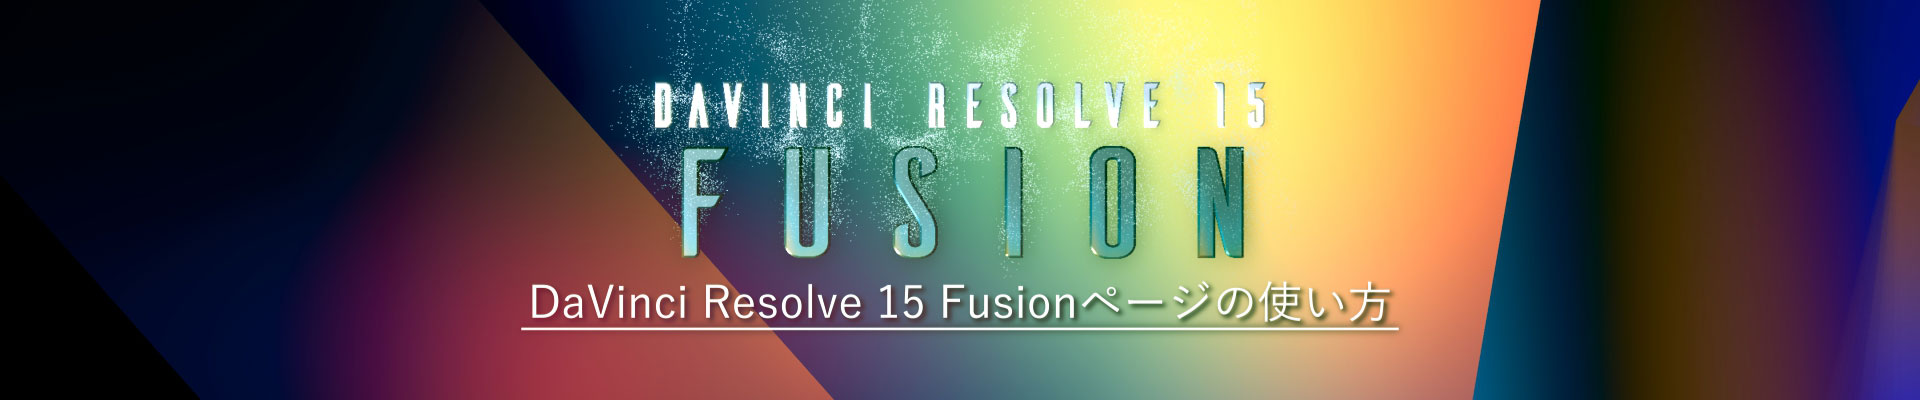 DaVinci Resolve 15 Fusion の 使い方